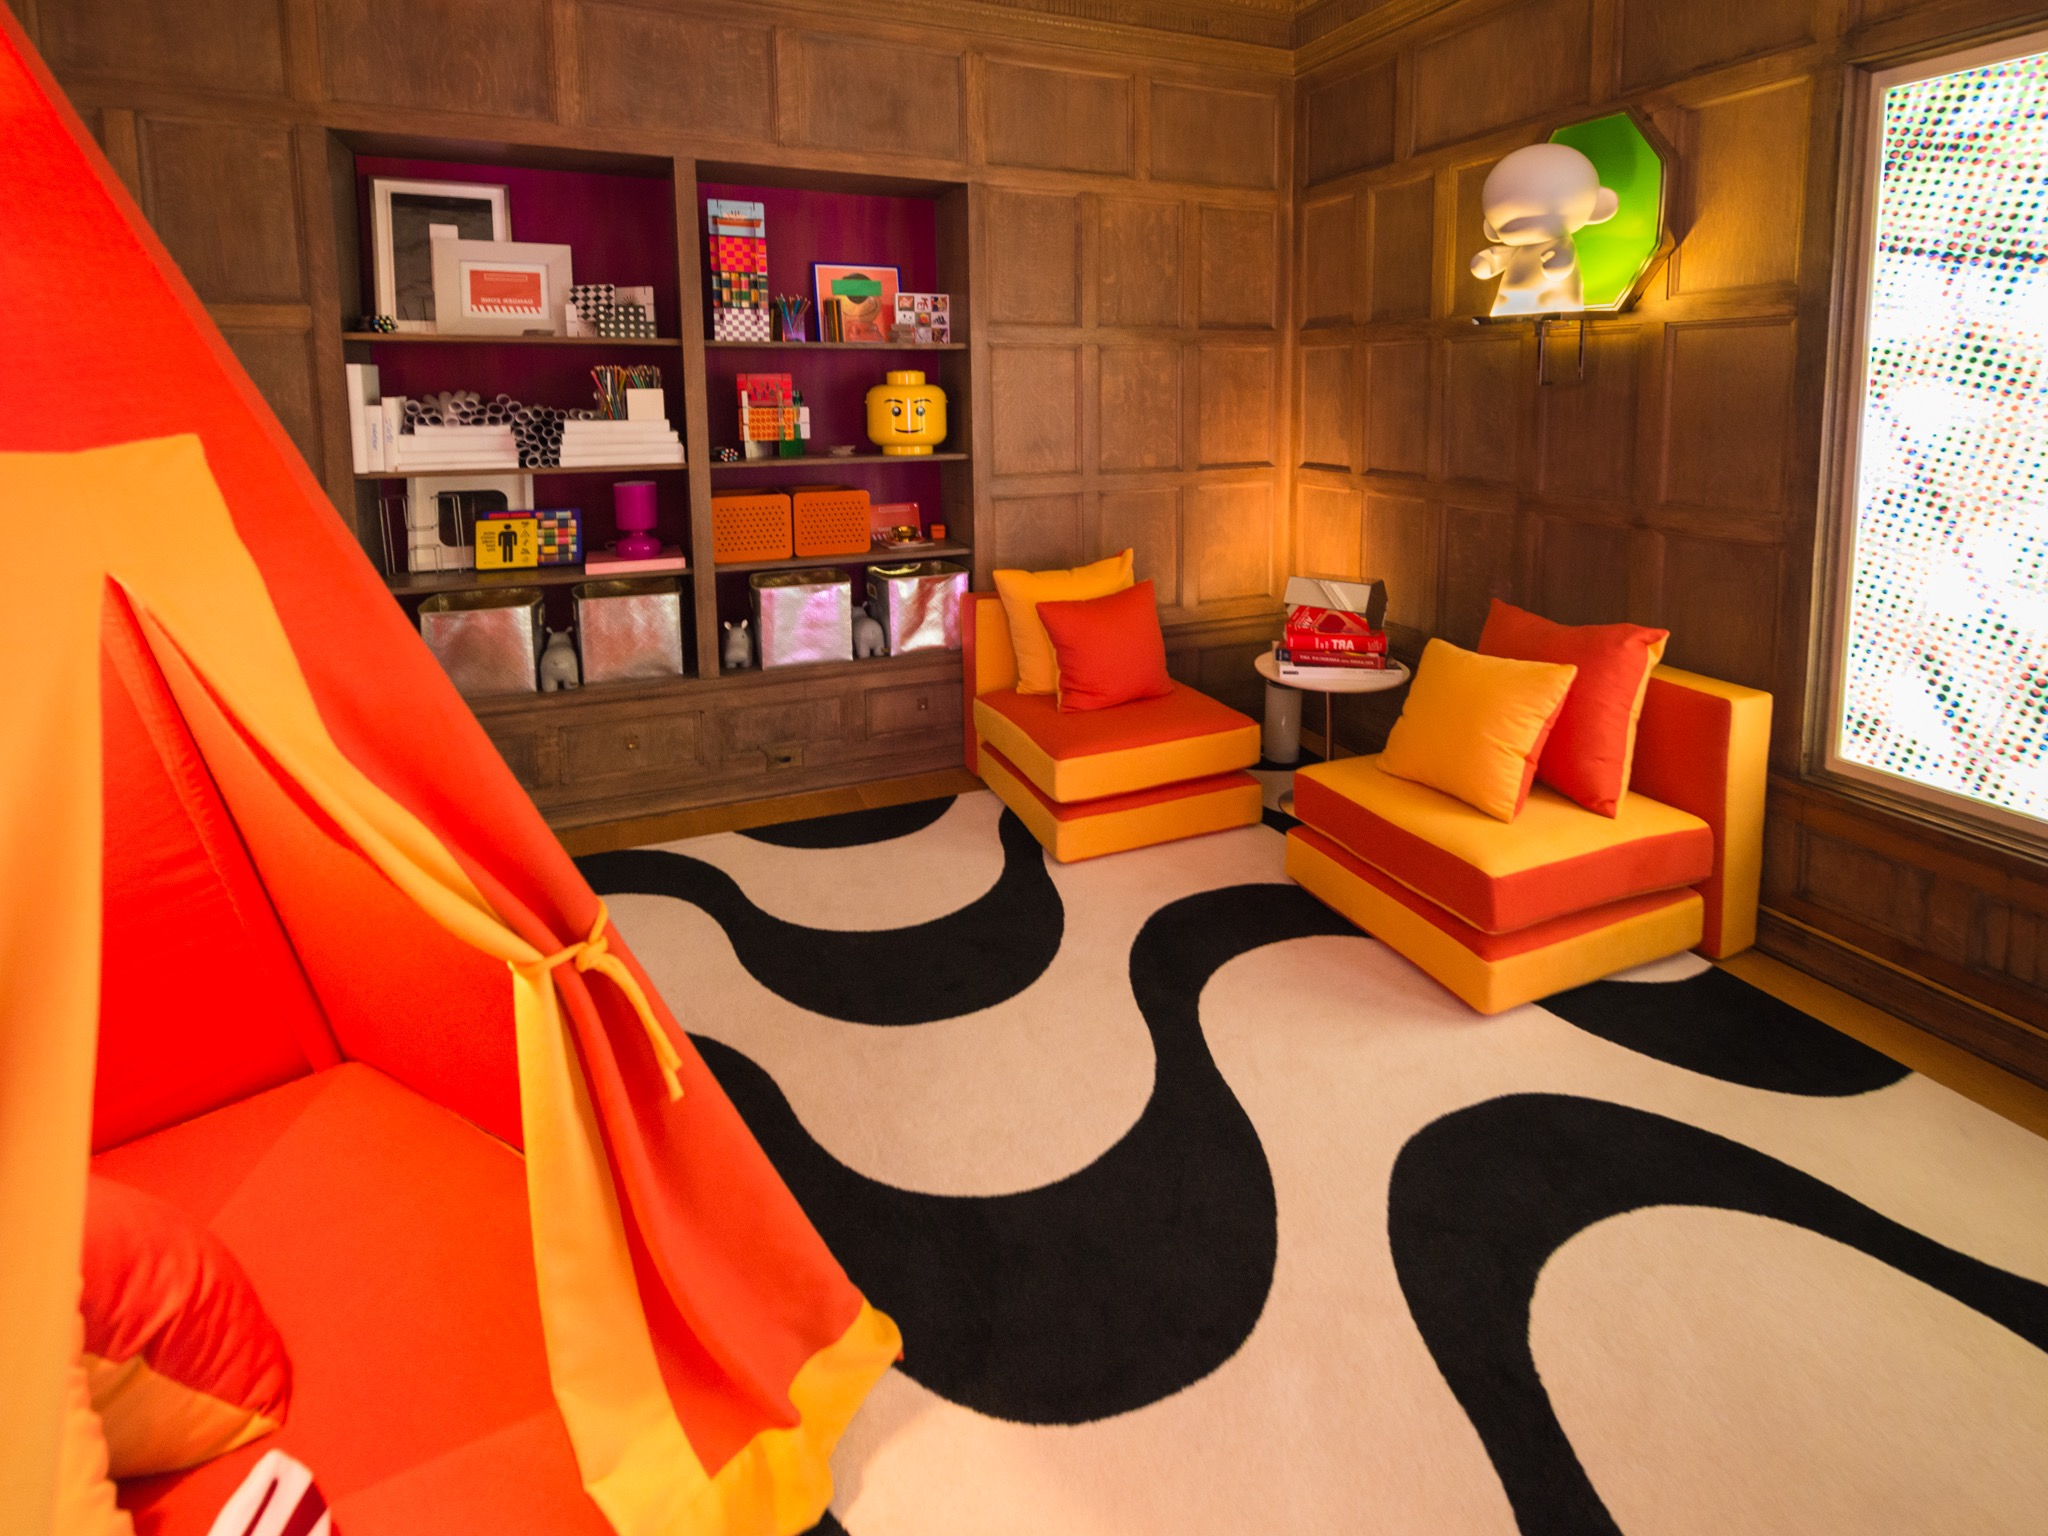 Modern Playroom With Wood Paneling And Bright Orange Furniture (Image 22 of 30)